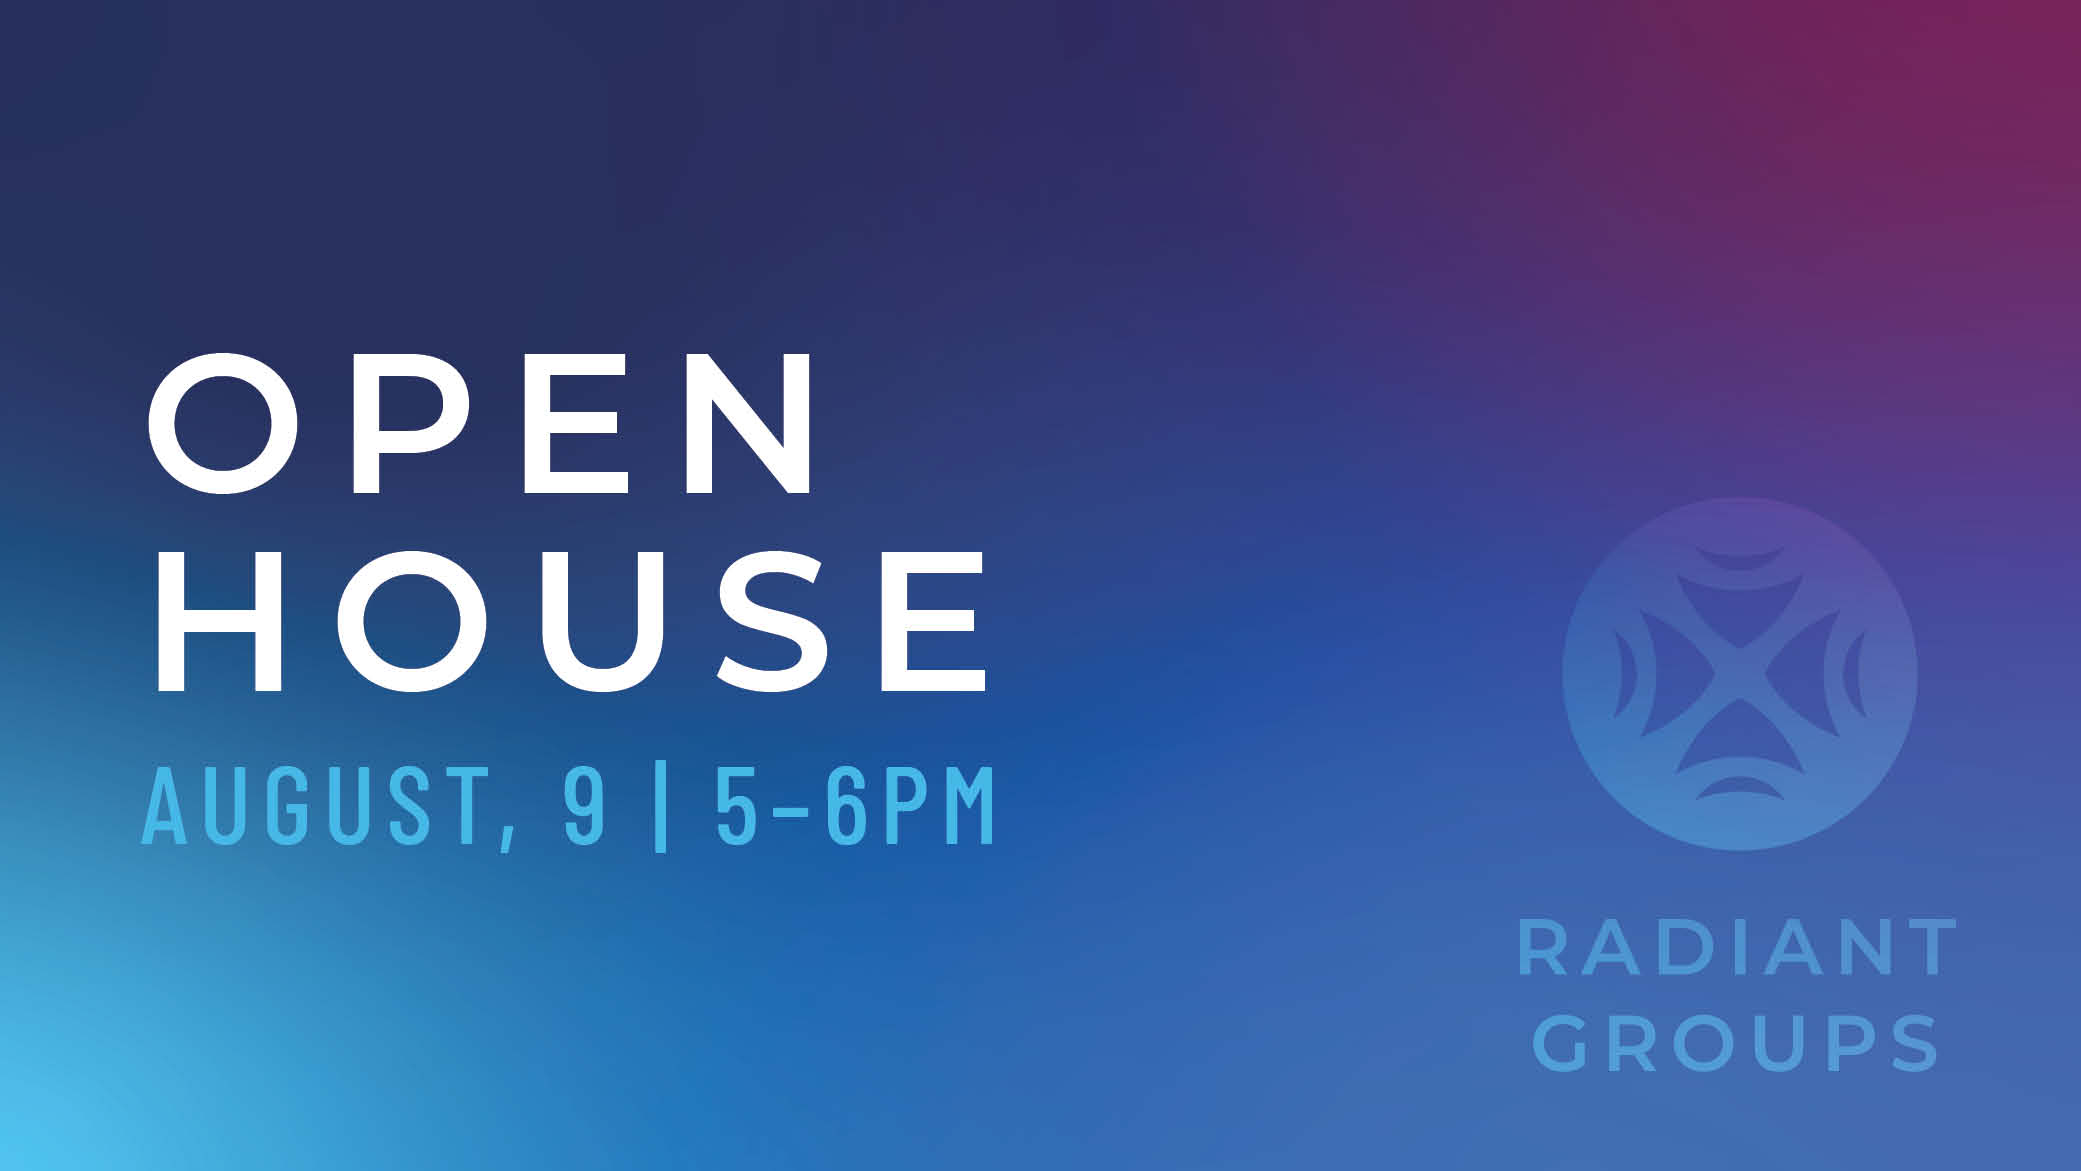 Radiant Groups Open House1 image